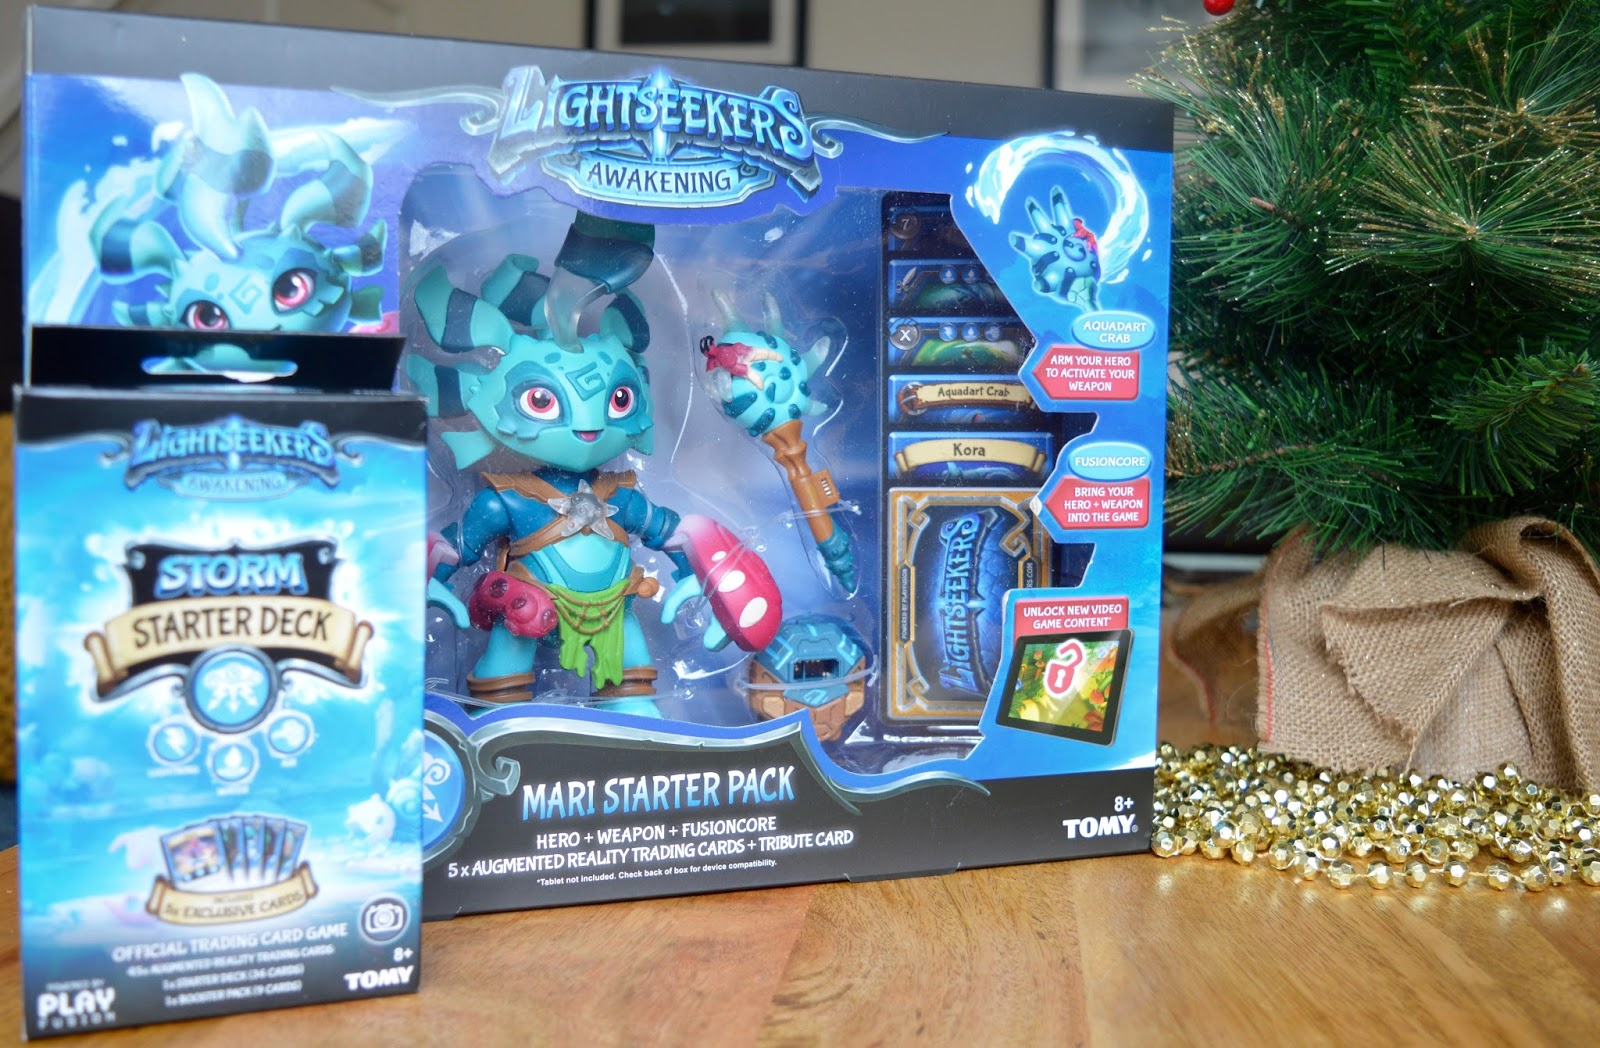 Lightseekers Mari Starter Pack Review, Parent's Guide & Giveaway